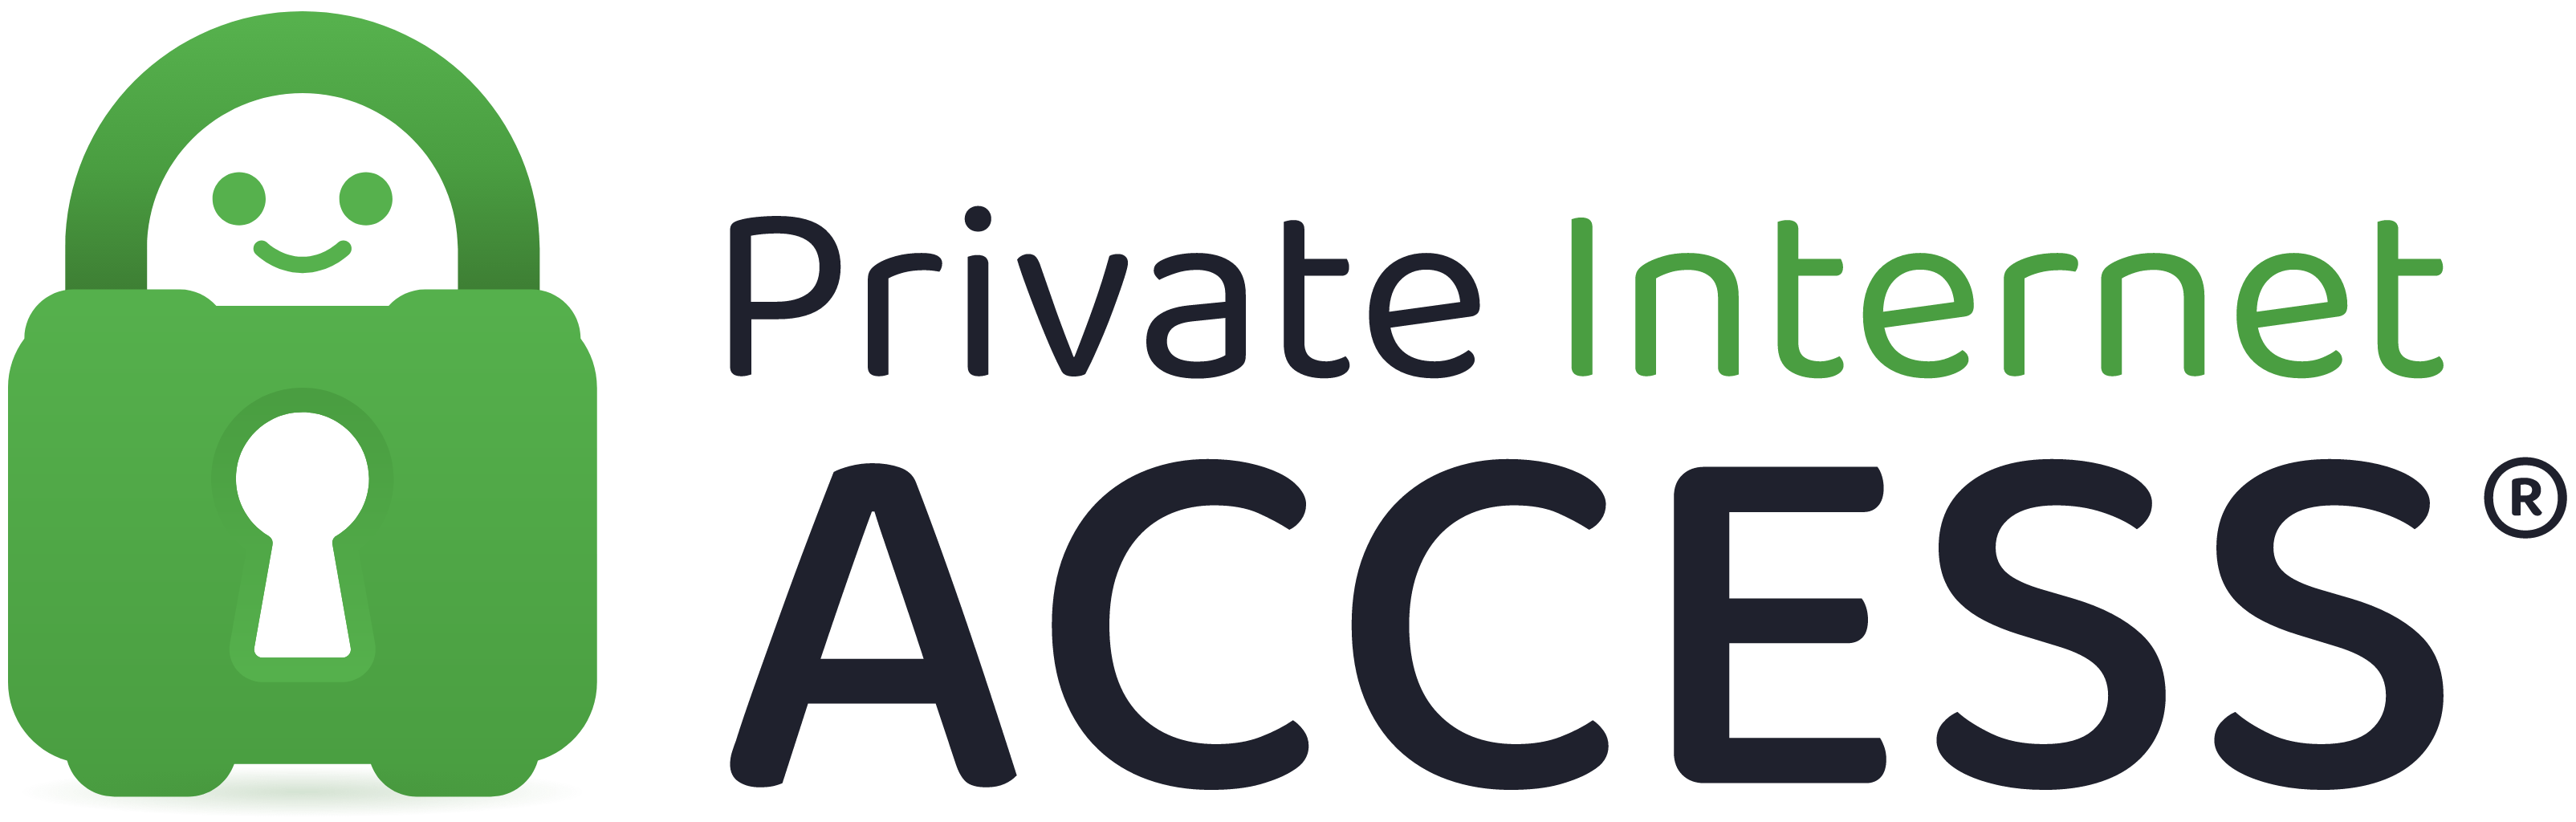 Private Internet Access Coupons